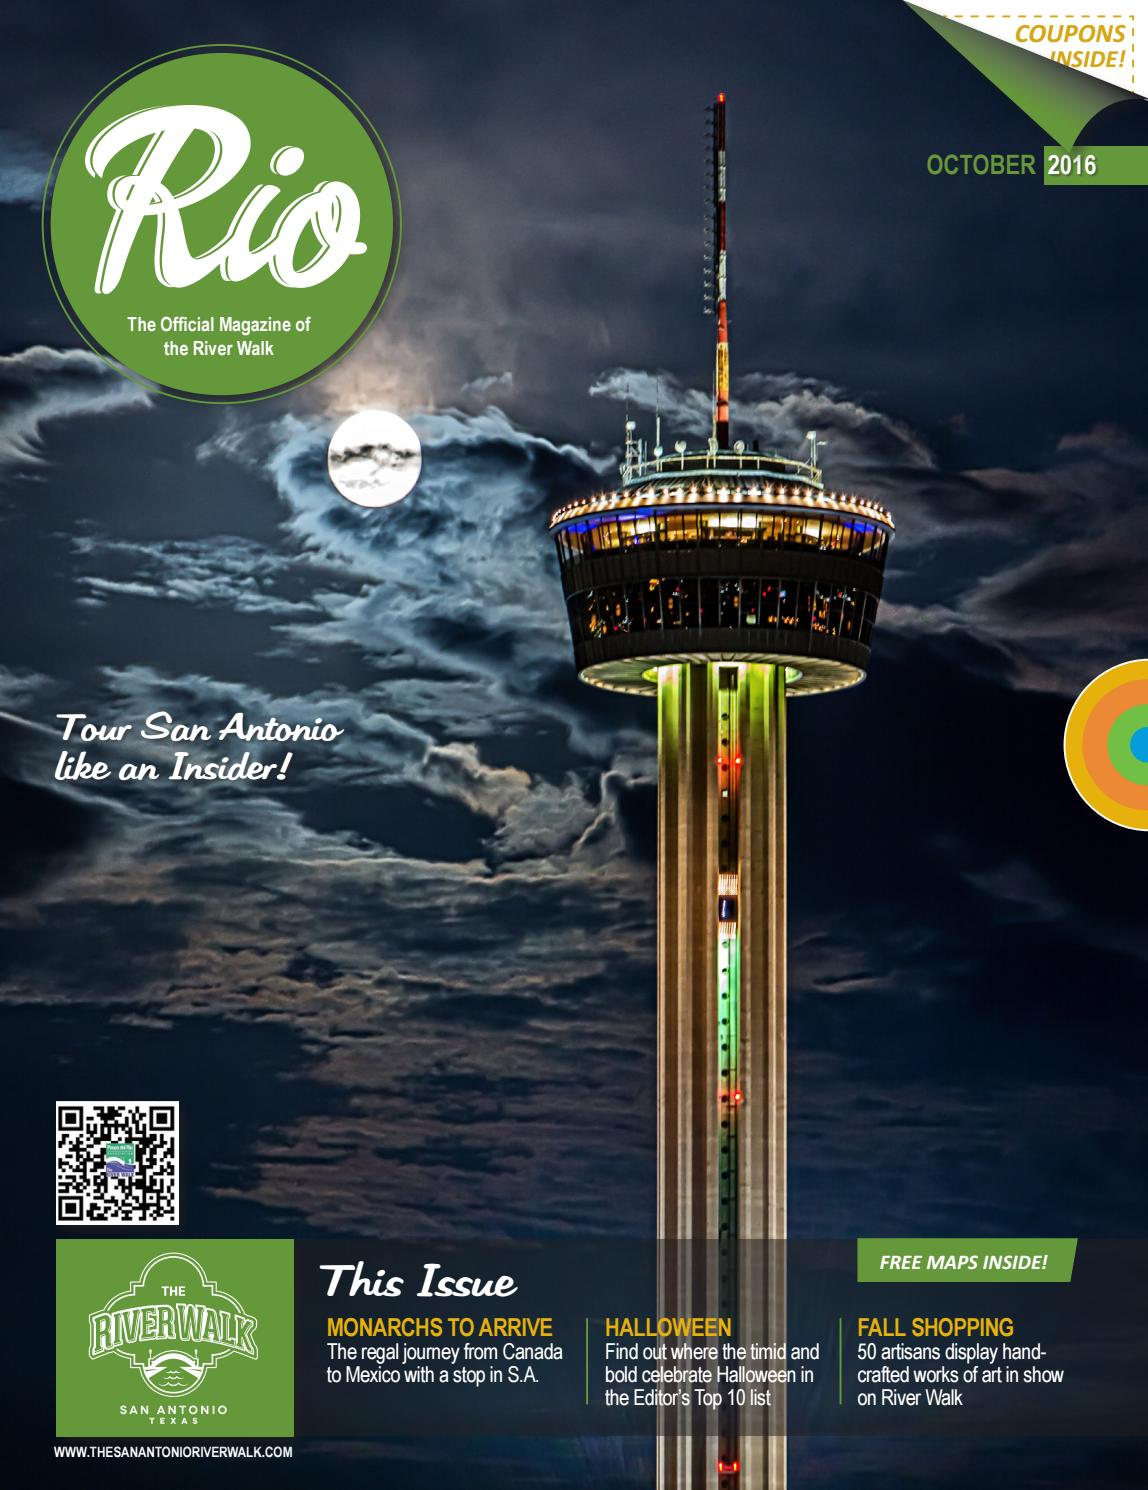 rio magazine october 2016 by traveling blender - issuu